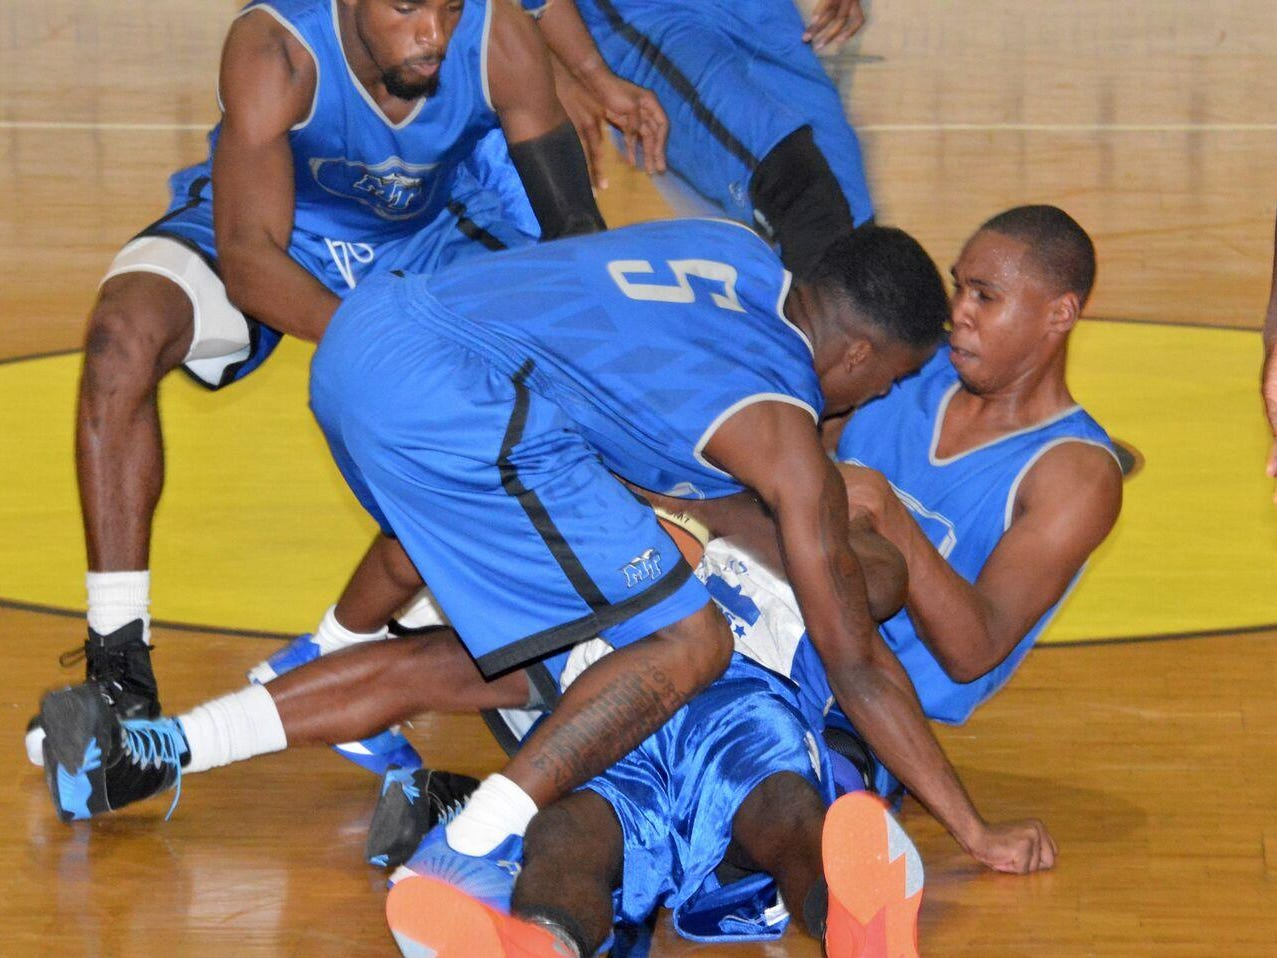 MTSU guards Jaqawn Raymond (right) and Jacob Ivory battle an Atlantis All-Stars player for the ball during Friday night's game in the Bahamas.